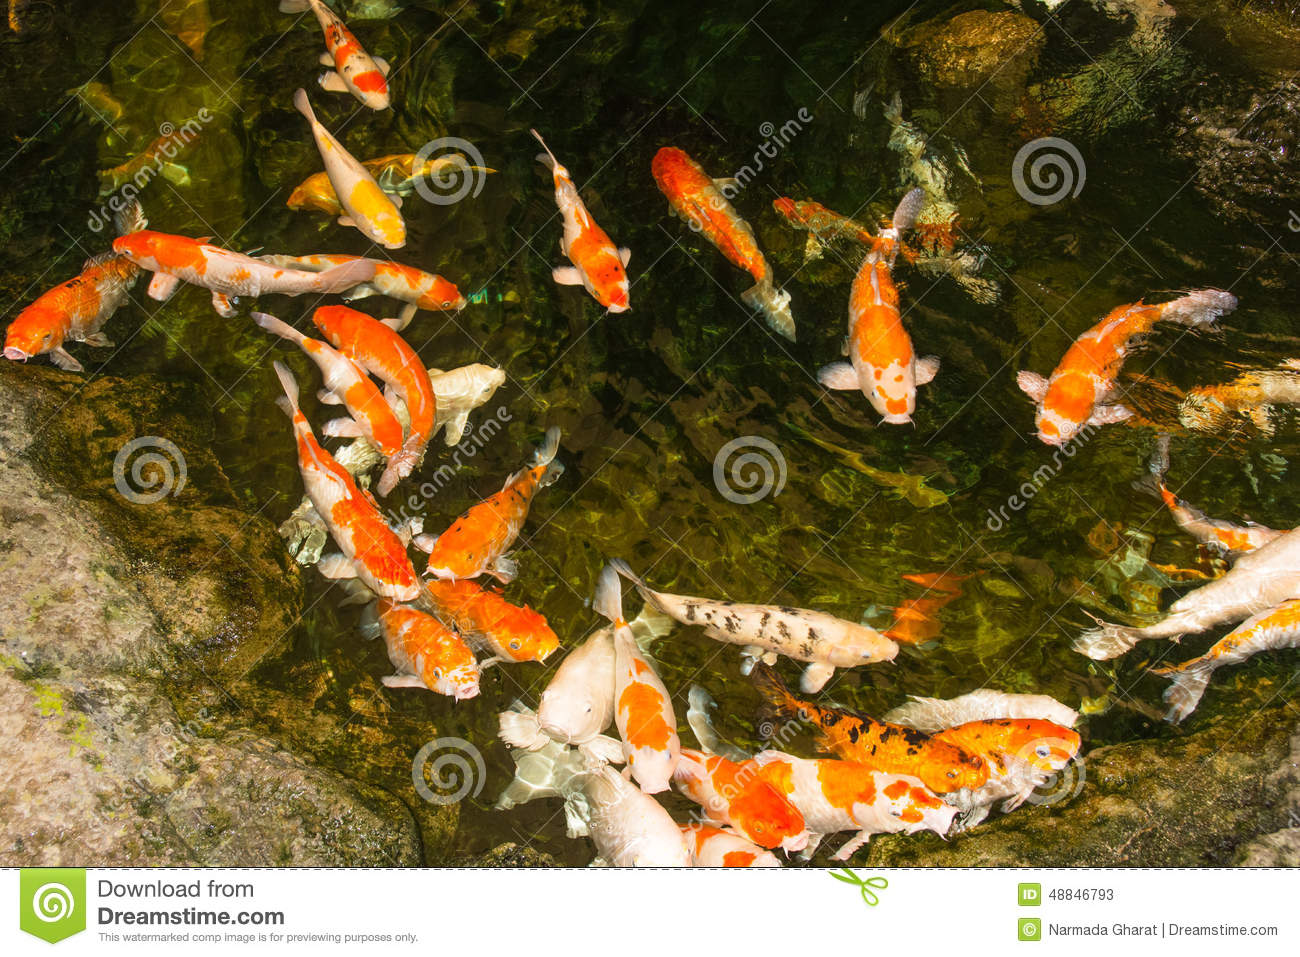 Koi fish swimming in pond stock photo image 48846793 for Decorative pond fish